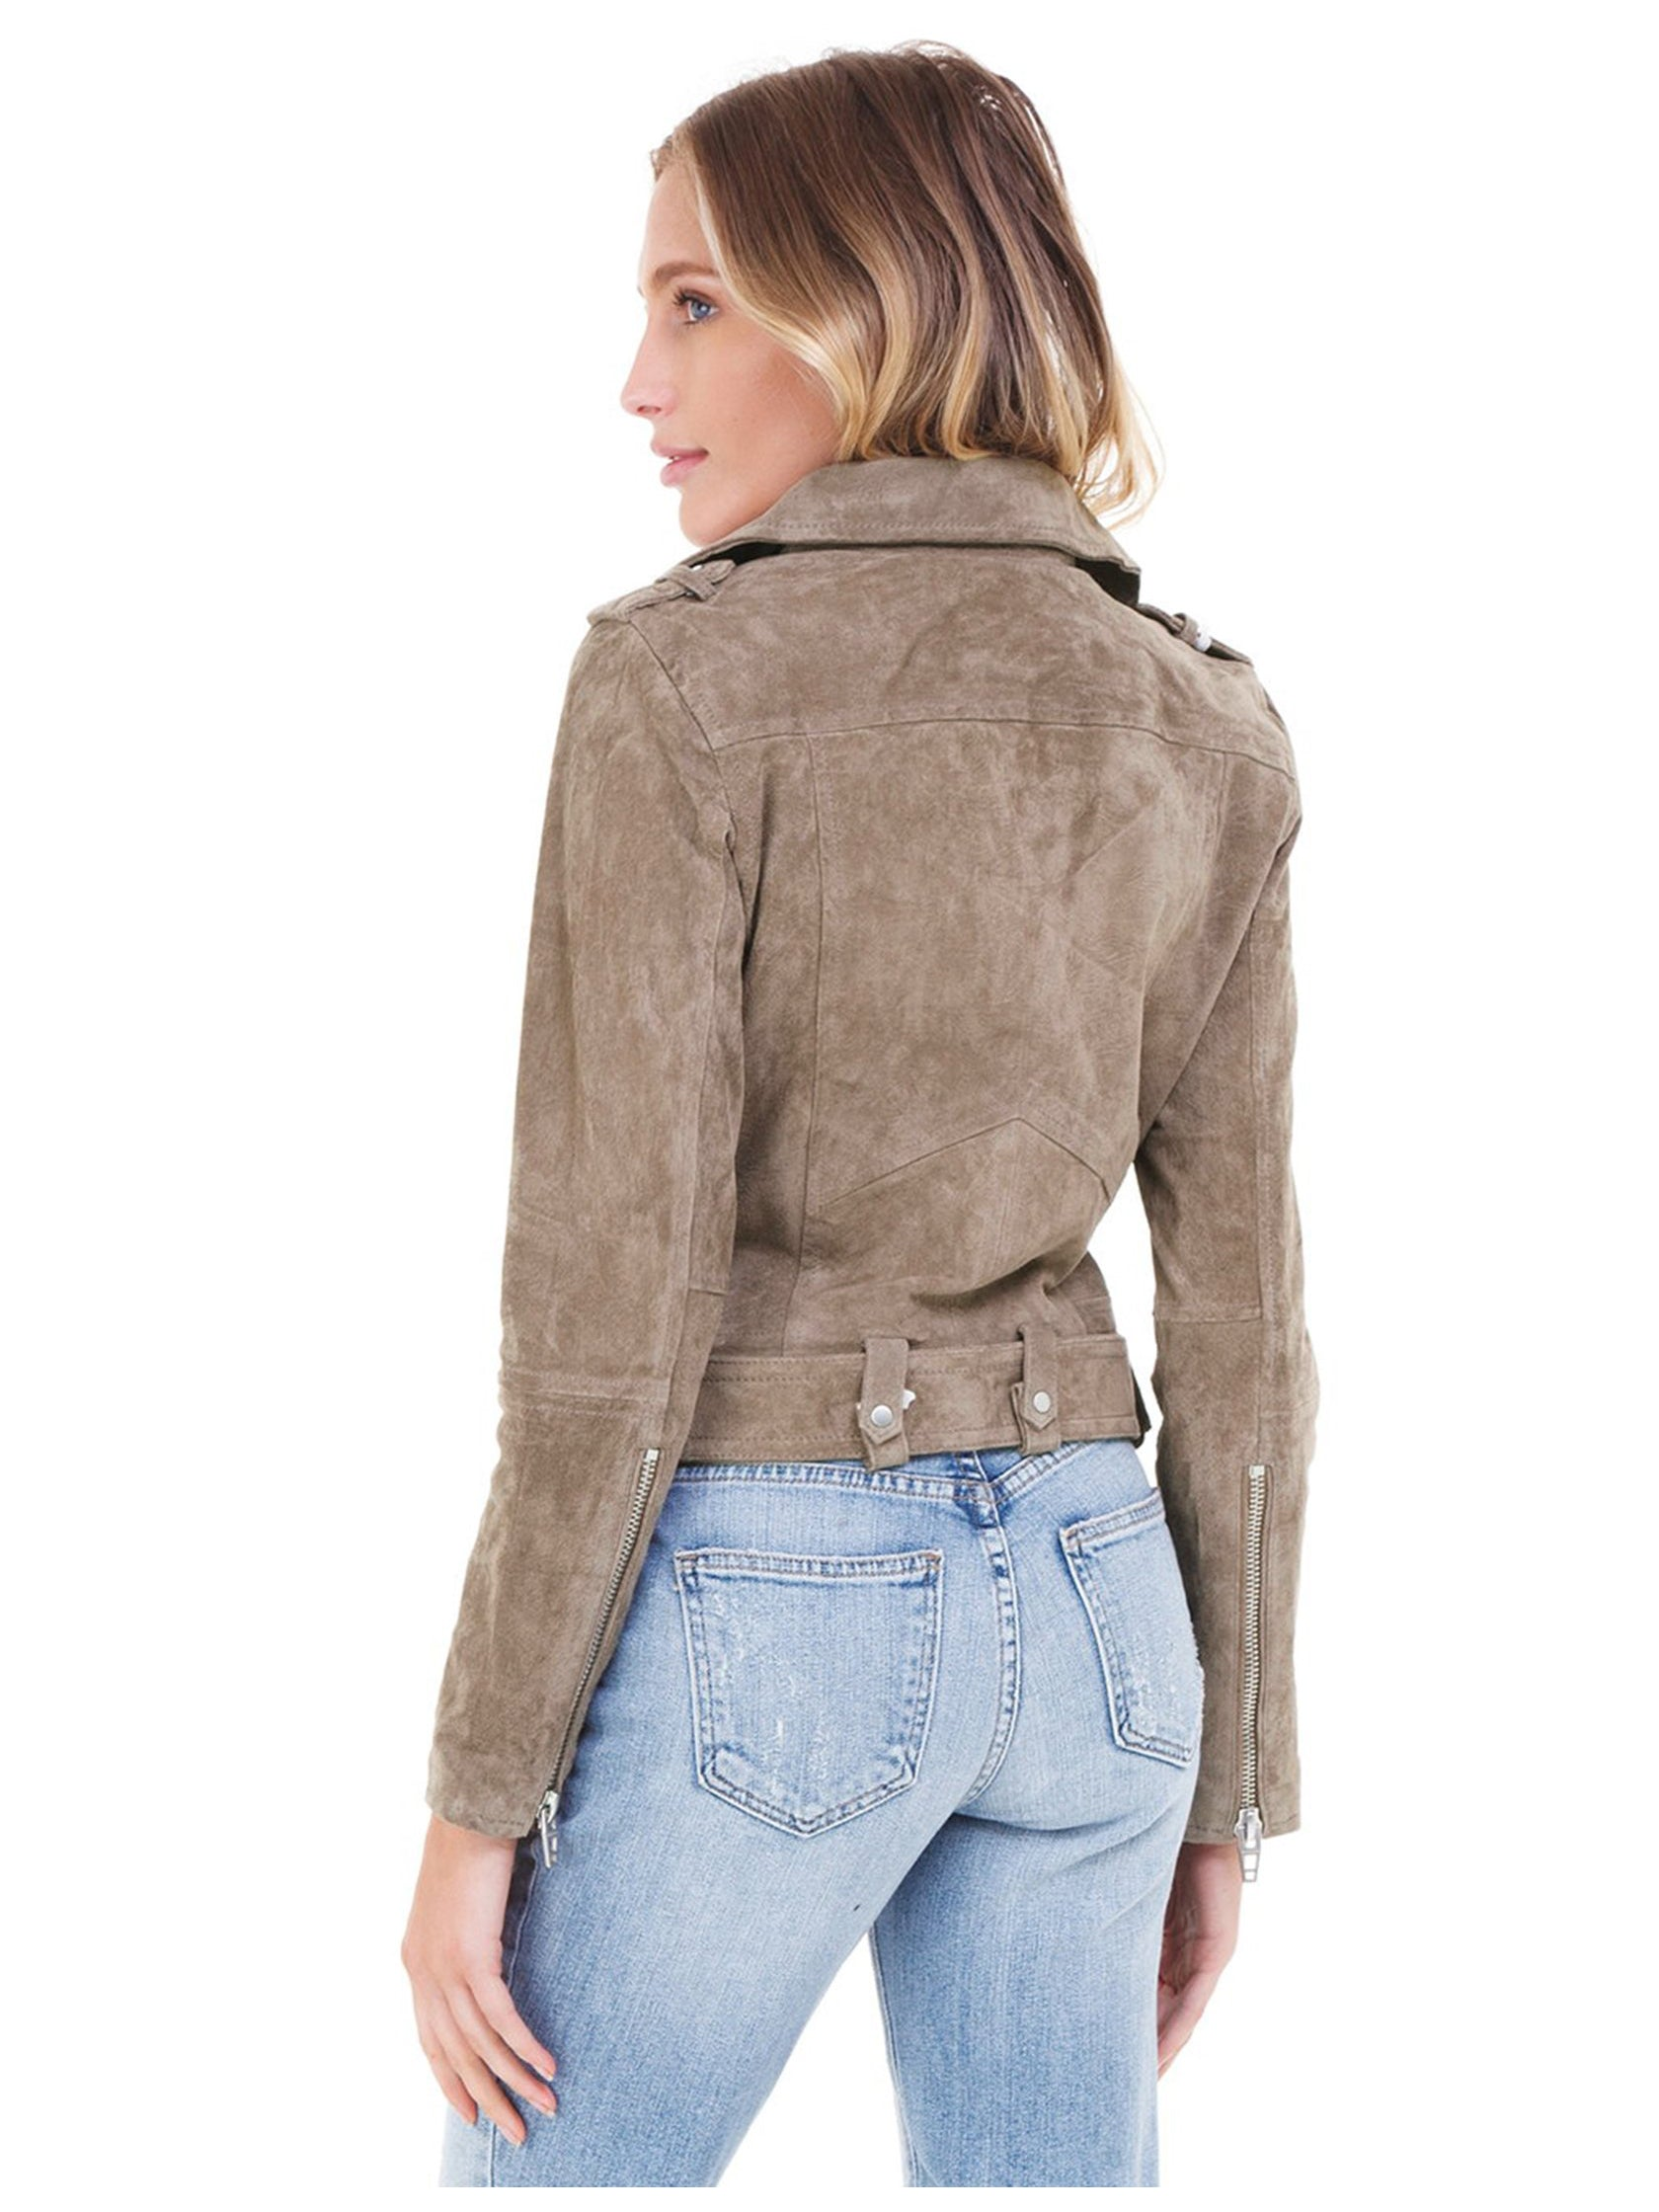 Women outfit in a jacket rental from BLANKNYC called Suede Moto Jacket